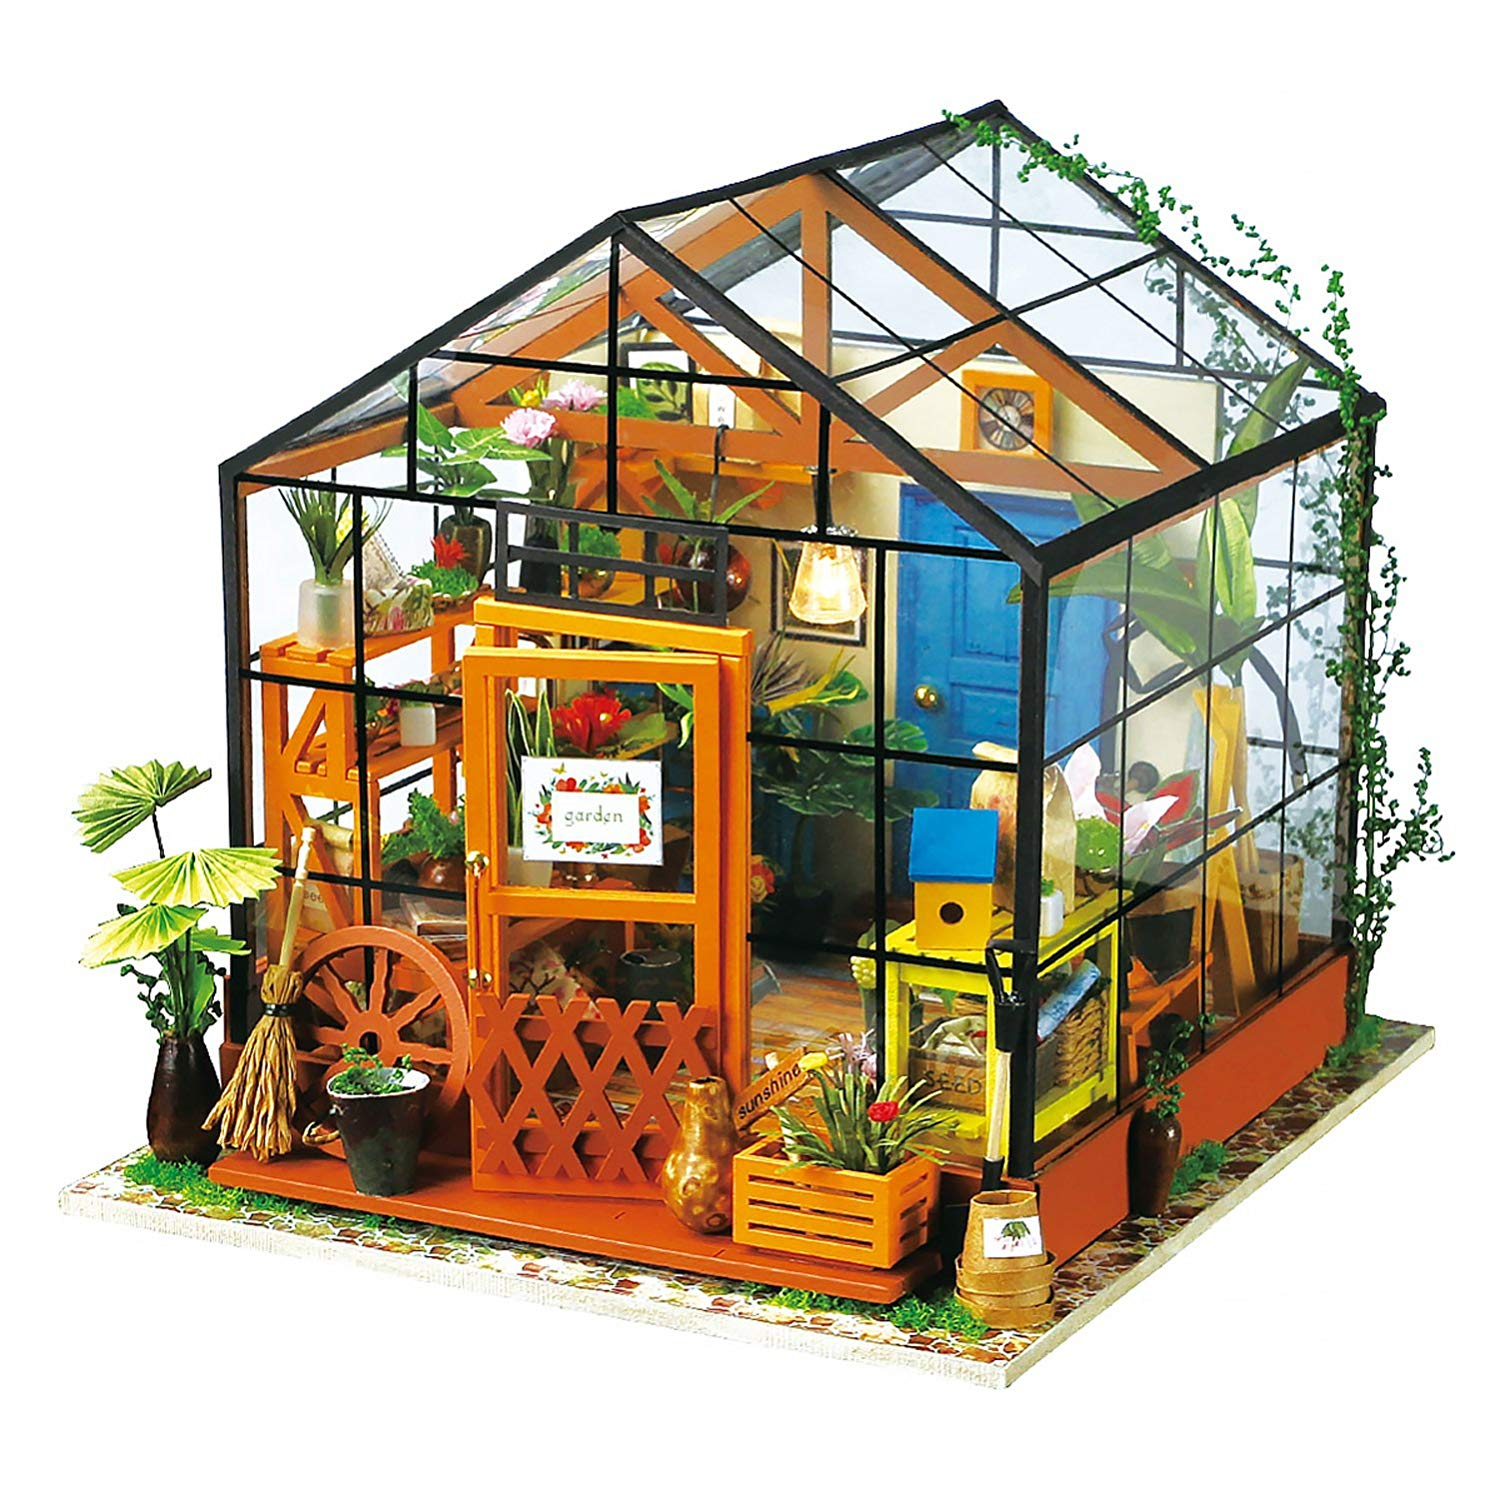 Robotime Miniature 3d Greenhouse Craft Kits Dolls House with Furniture and Accessories Educational Toys